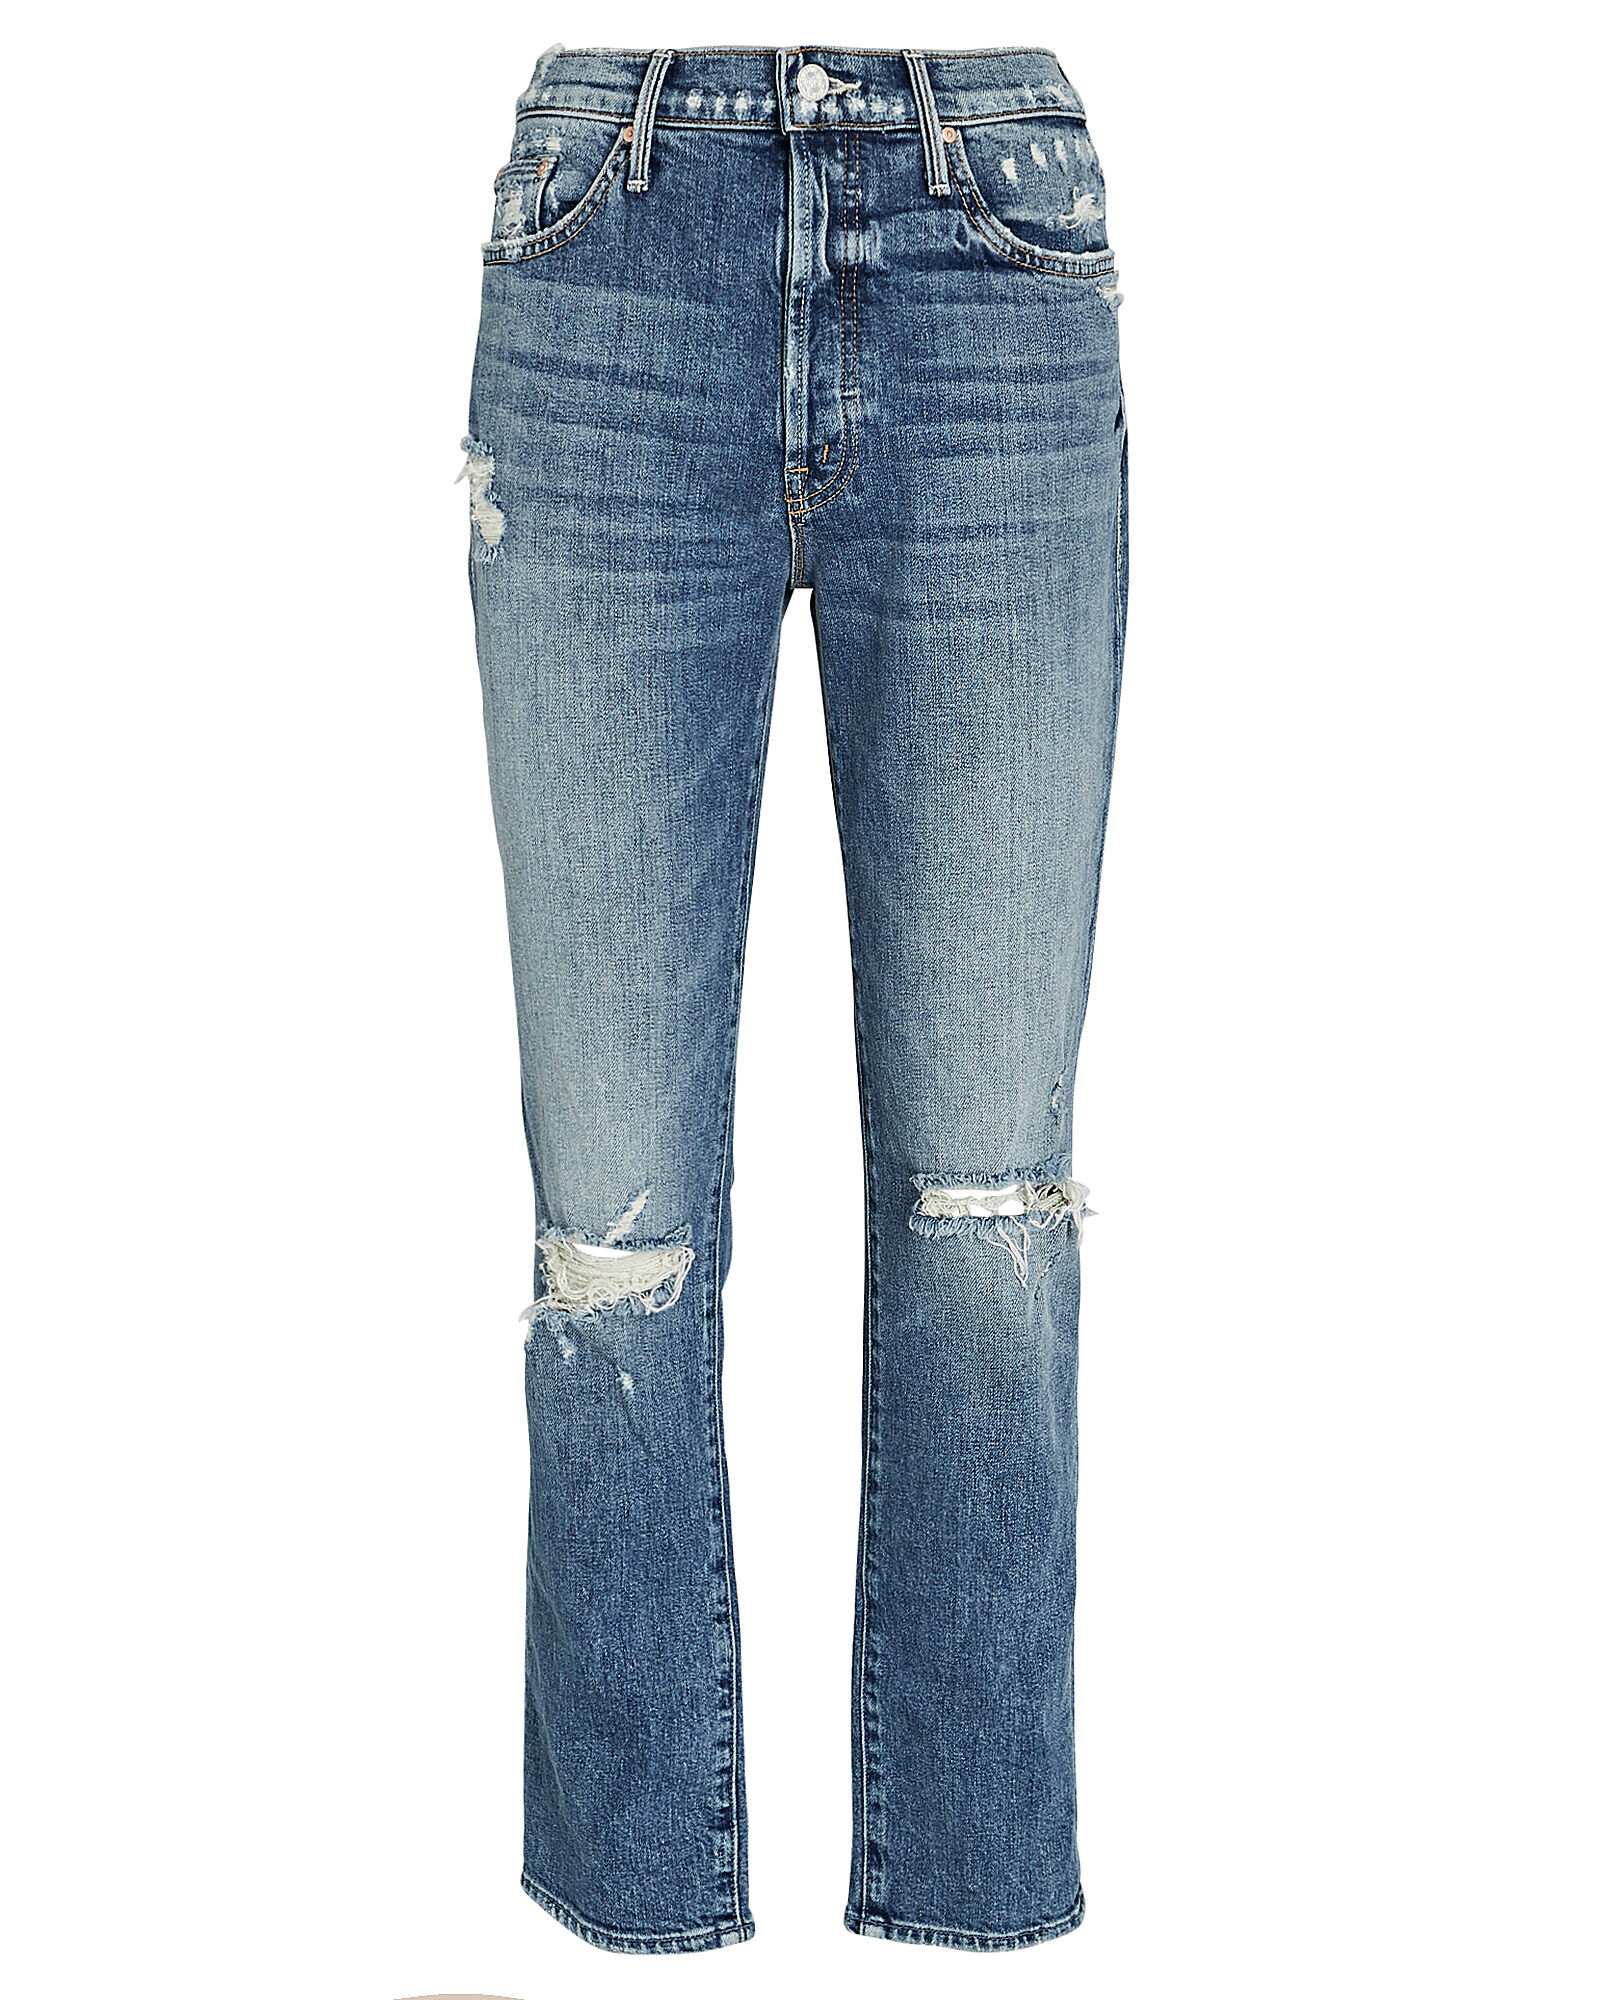 Trickster Distressed Straight-Leg Jeans, ON HOLY GROUND, hi-res